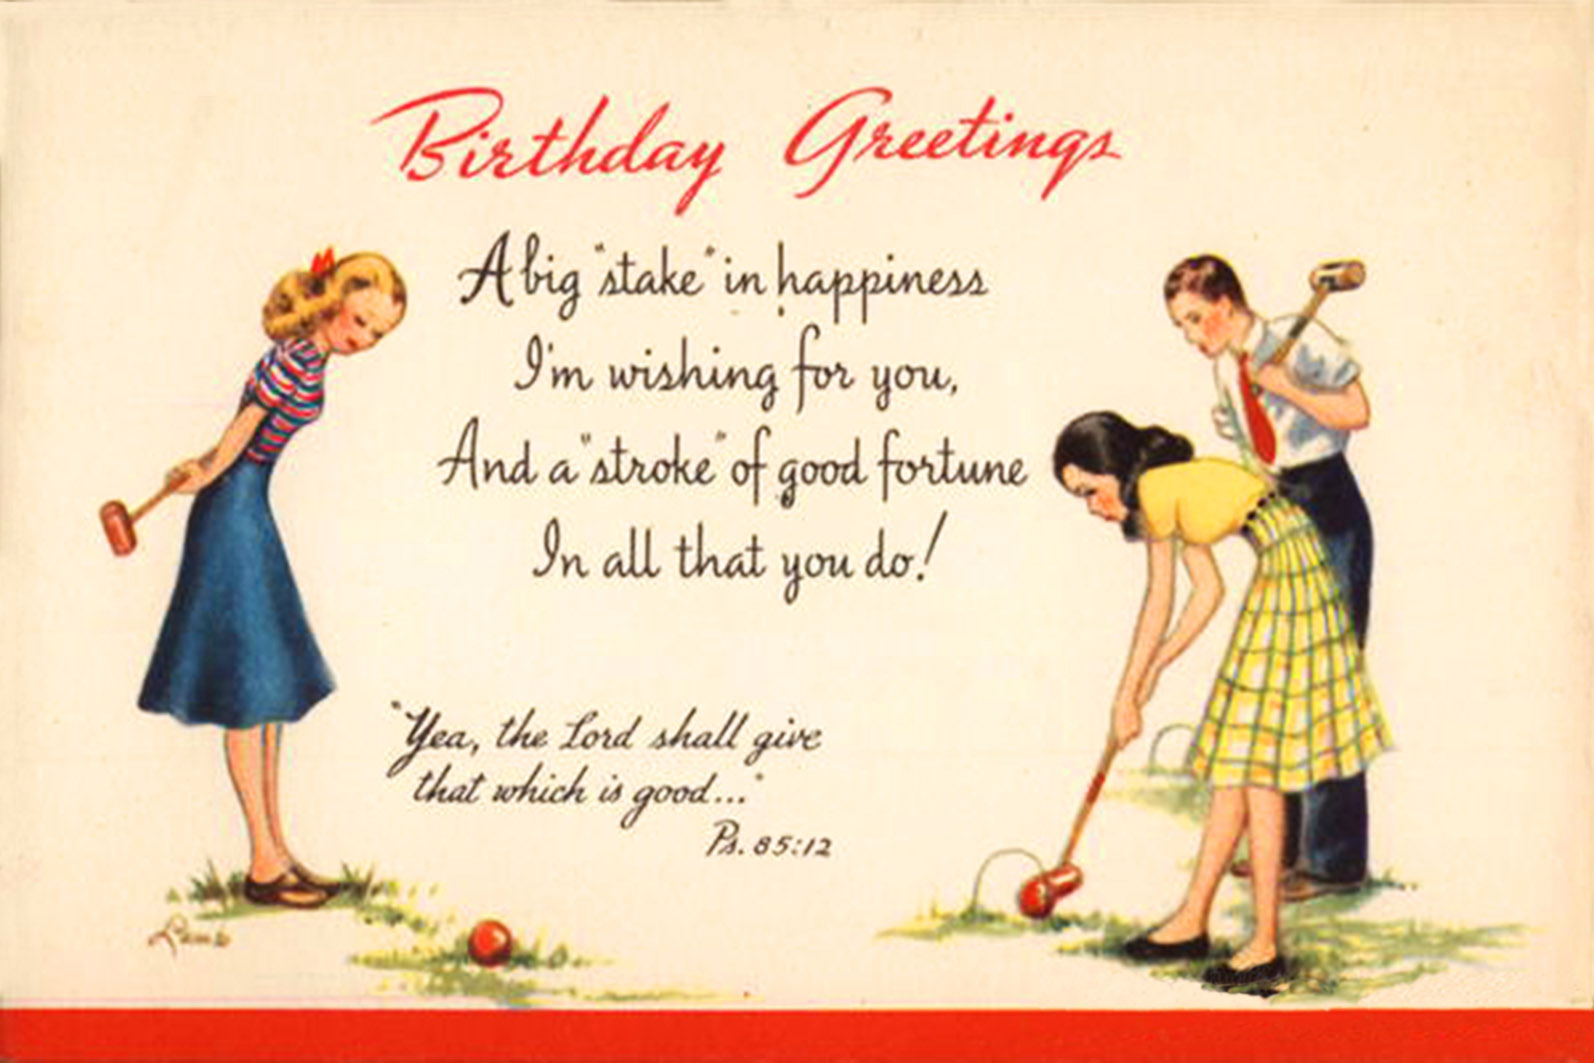 Free Funny Birthday Cards Online – Free Funny Birthday Cards for Her